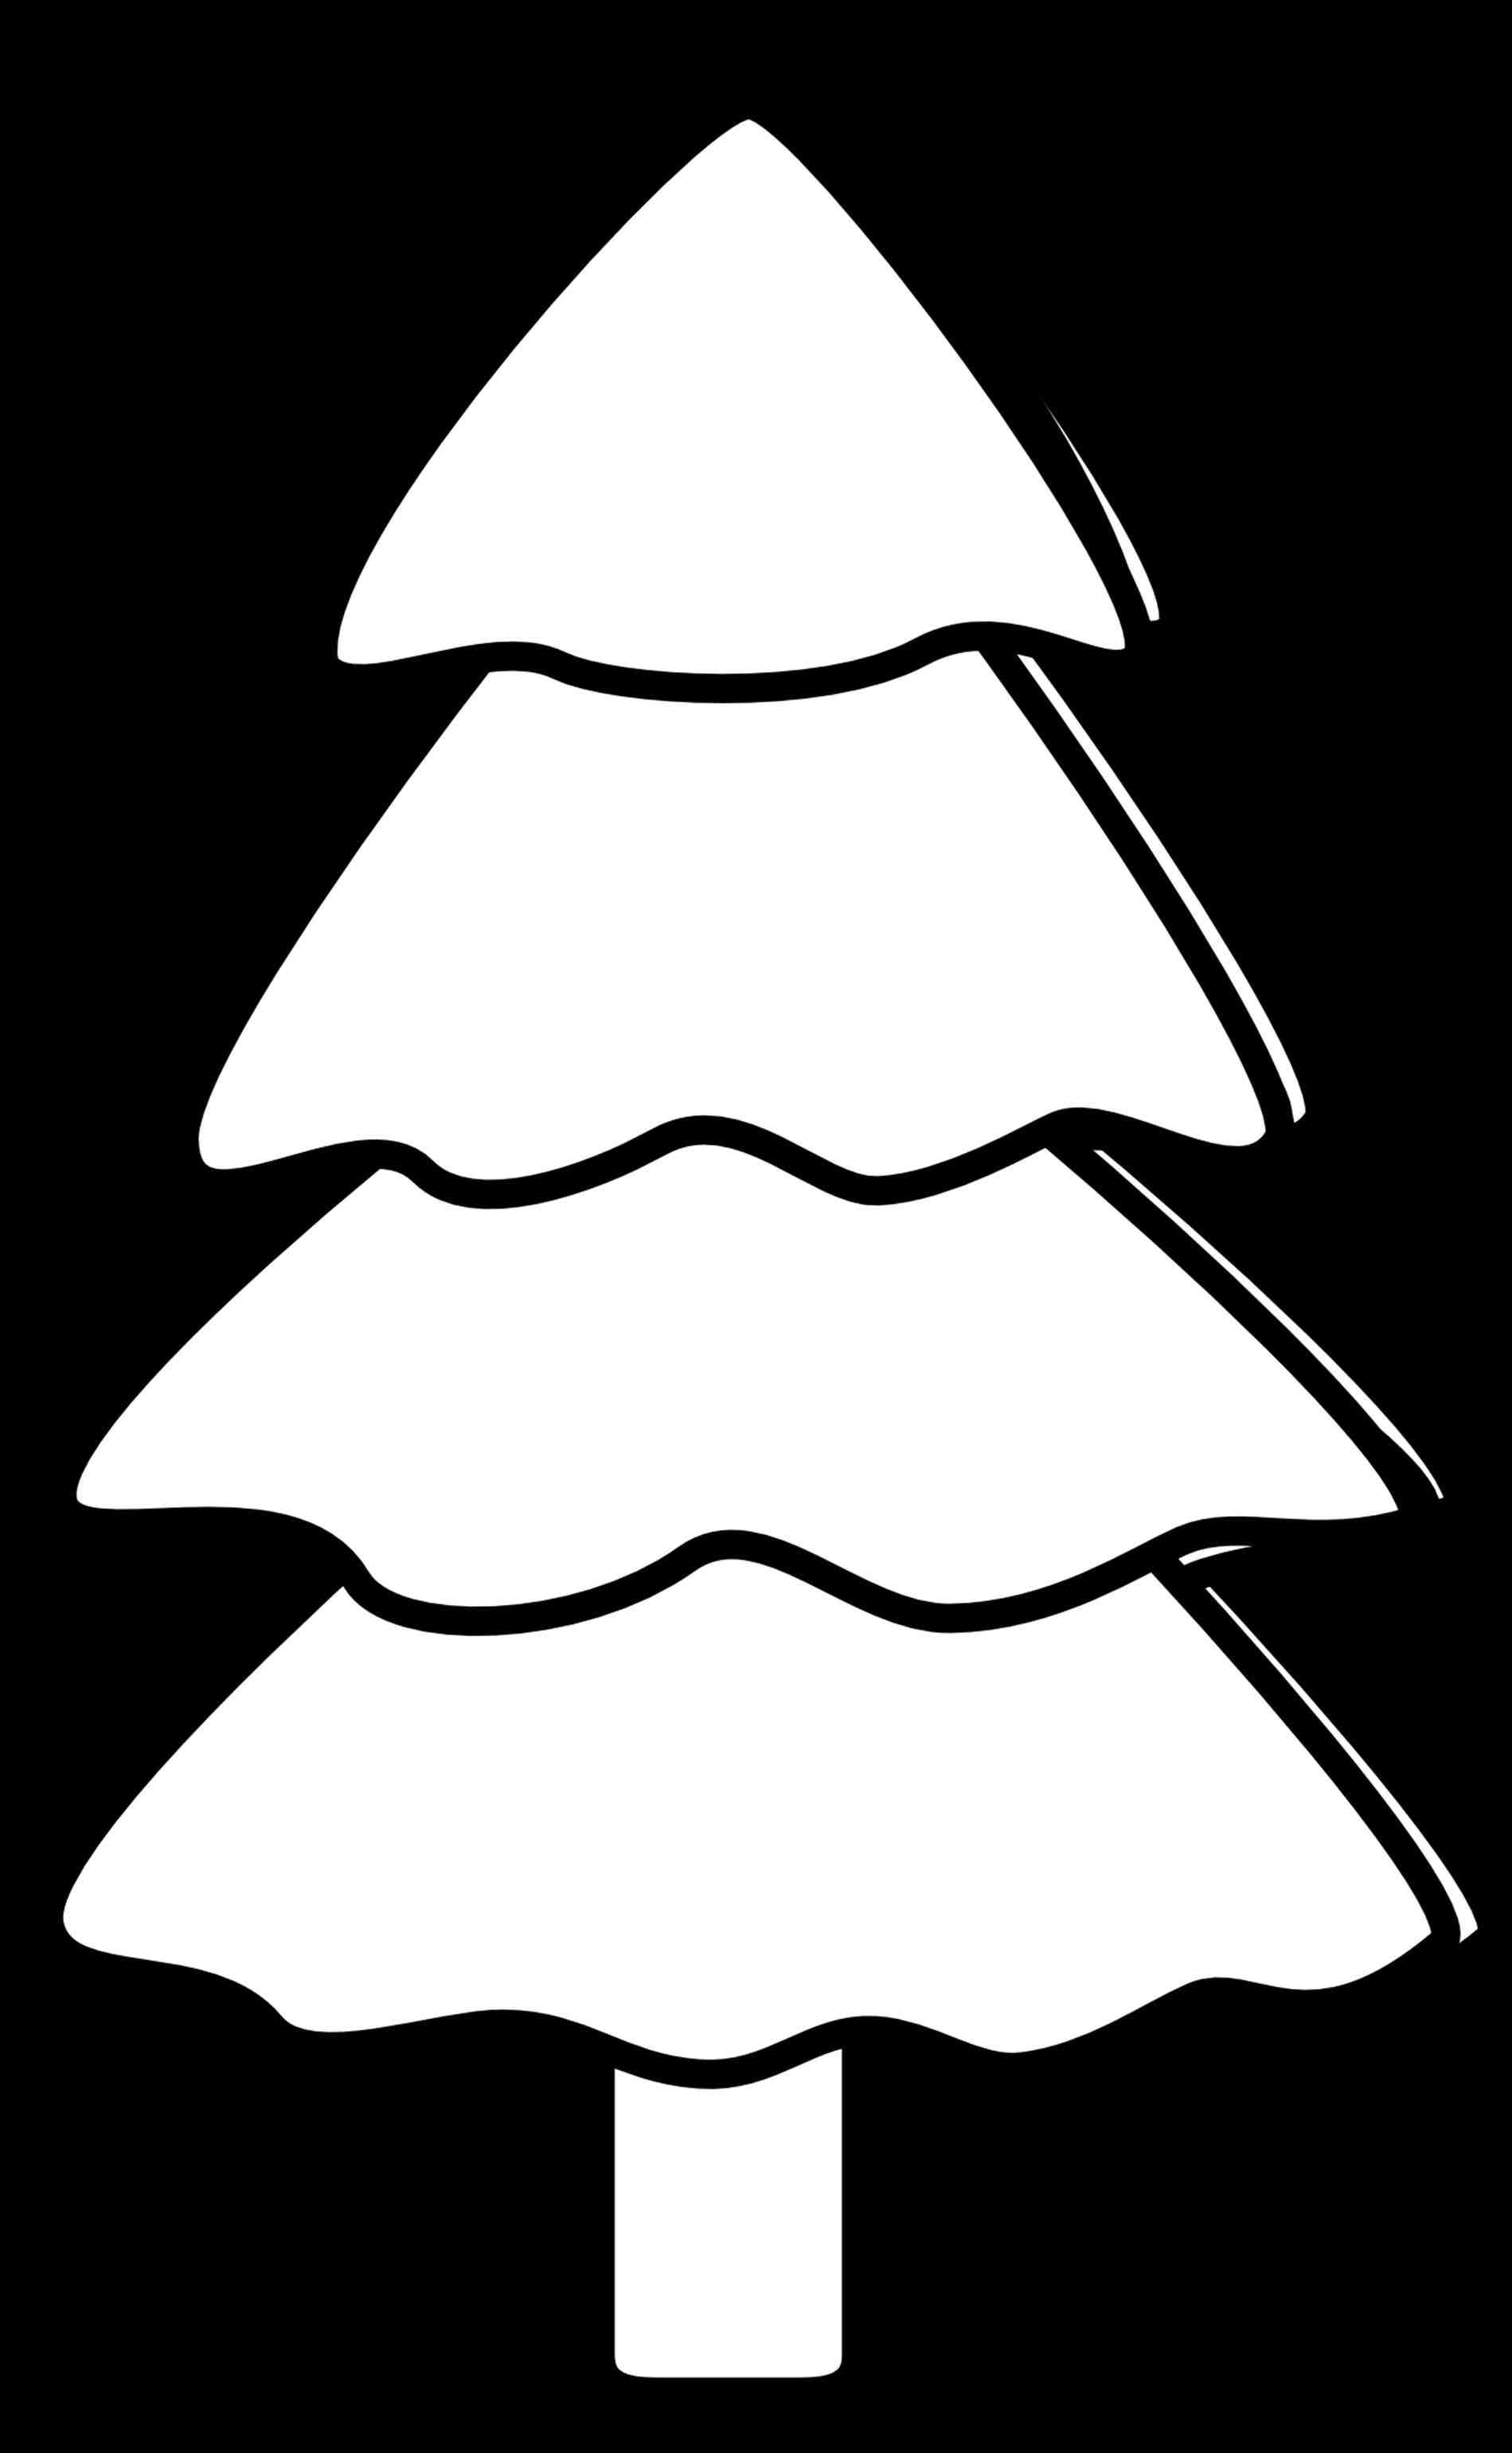 Tree Clipart Black And White Free